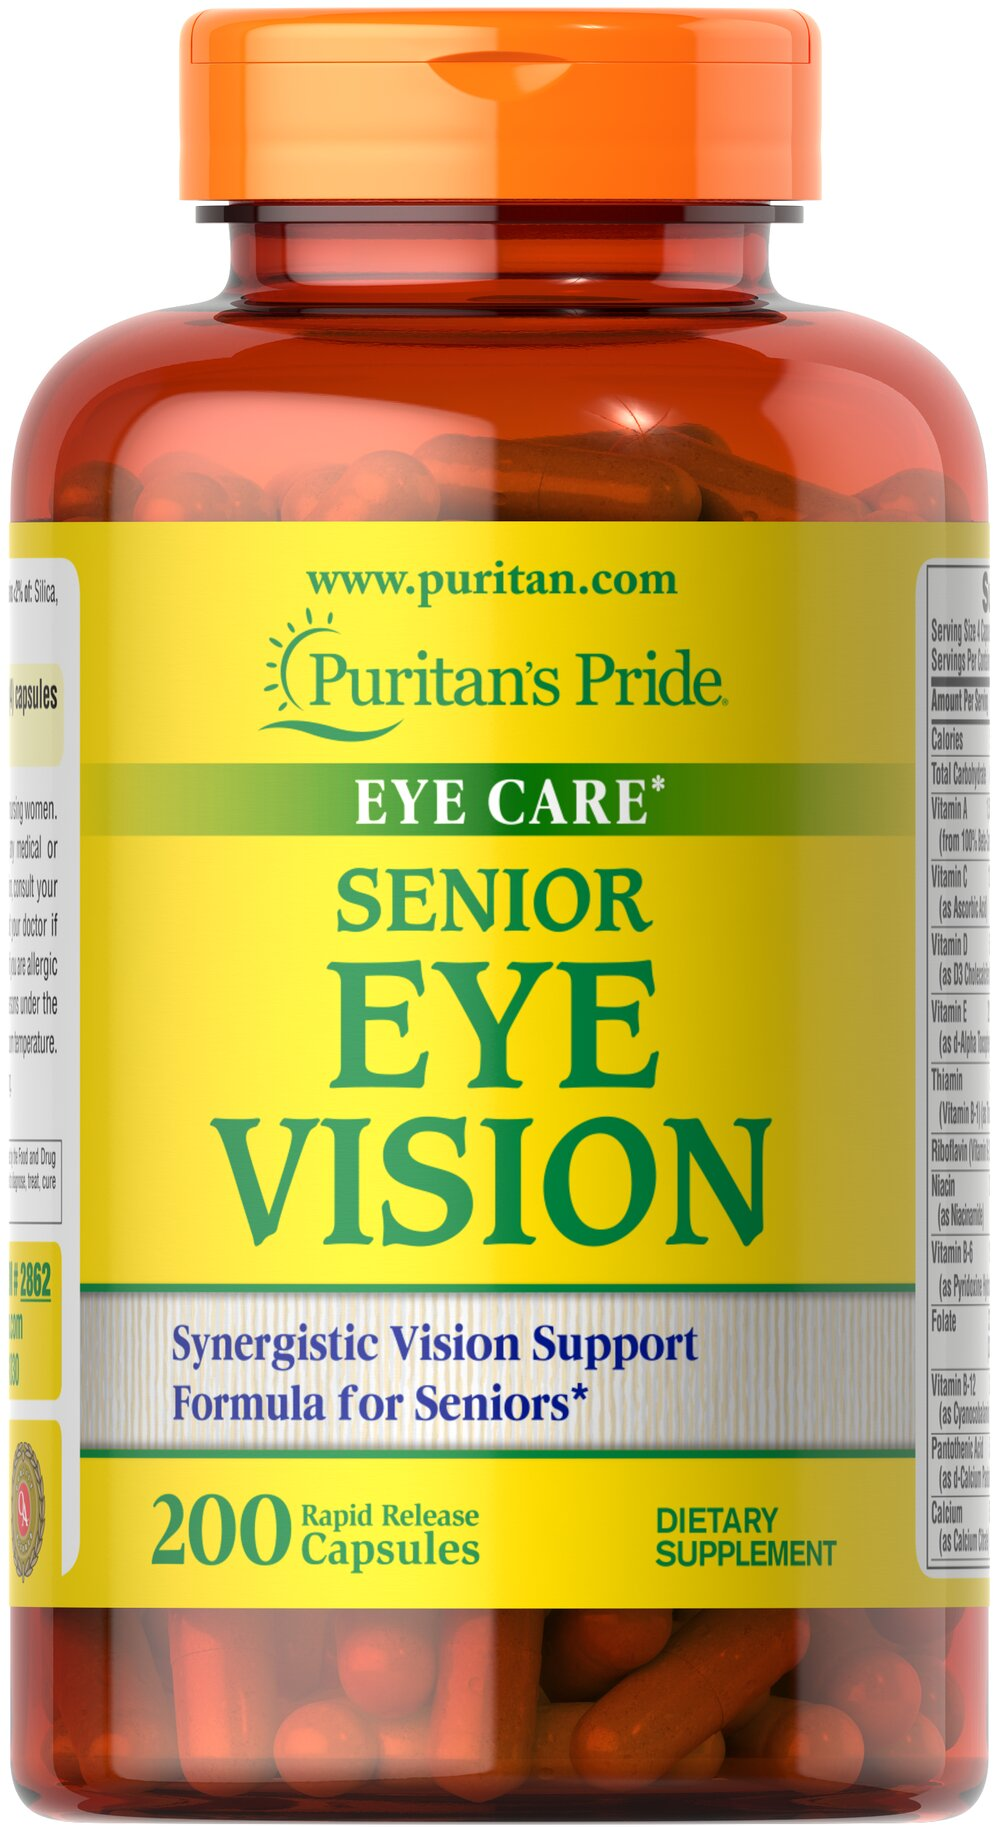 Senior Eye Vision <p>Gives you the nutritional support you need for healthy eyes**</p><p>Features Lutigold™ Lutein, a pure, natural form of Lutein that is non-genetically modified</p><p>Lutigold™ Lutein supports clear, healthy vision**</p><p>Includes a full range of vitamins for antioxidant support, including eye-healthy Vitamin A**</p><p>Contains more than 20 vitamins, minerals, herbs and amino acids</p>   200 Capsules  $40.29